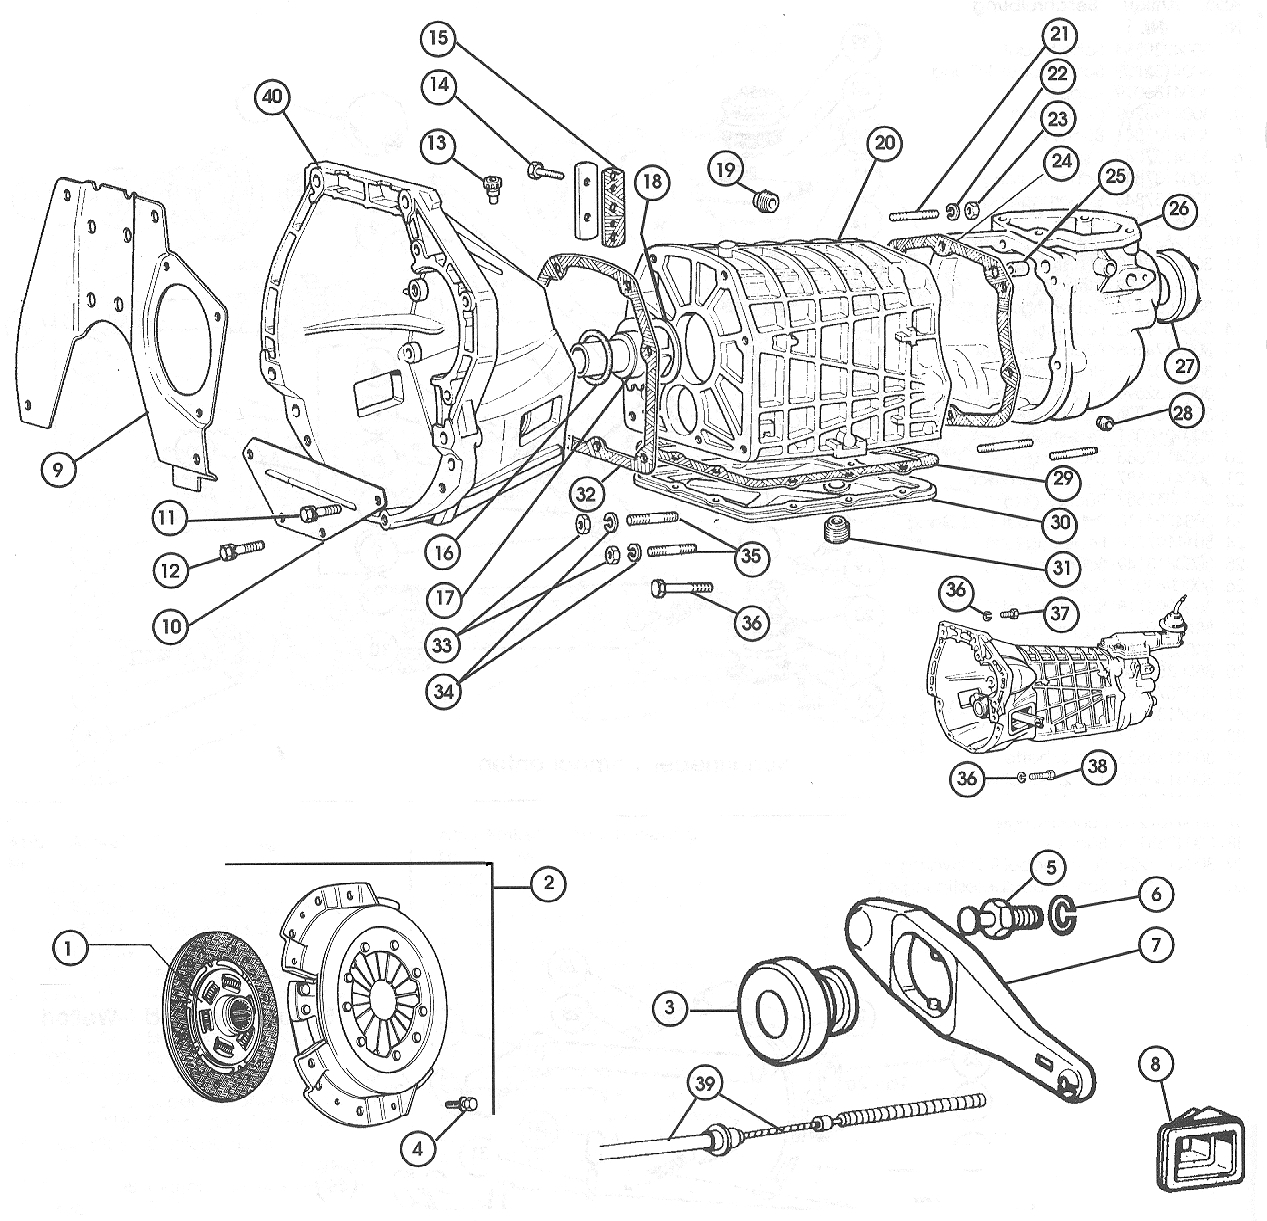 Gearbox, Five Speed Manual Gearbox